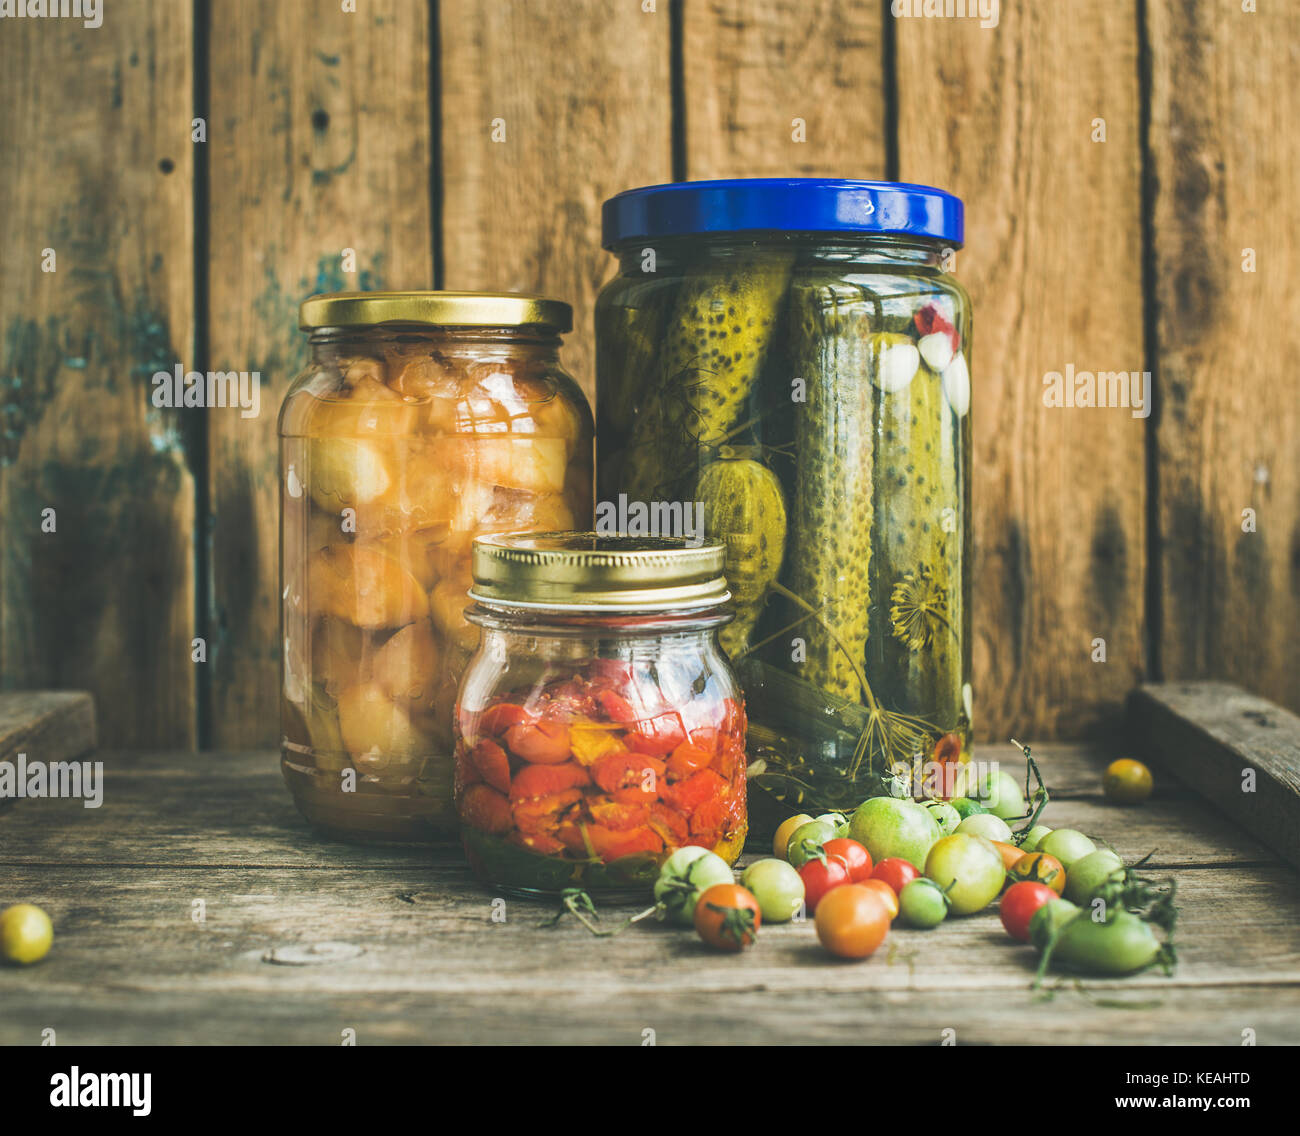 Autumn seasonal pickled vegetables and fruit in glass jars - Stock Image